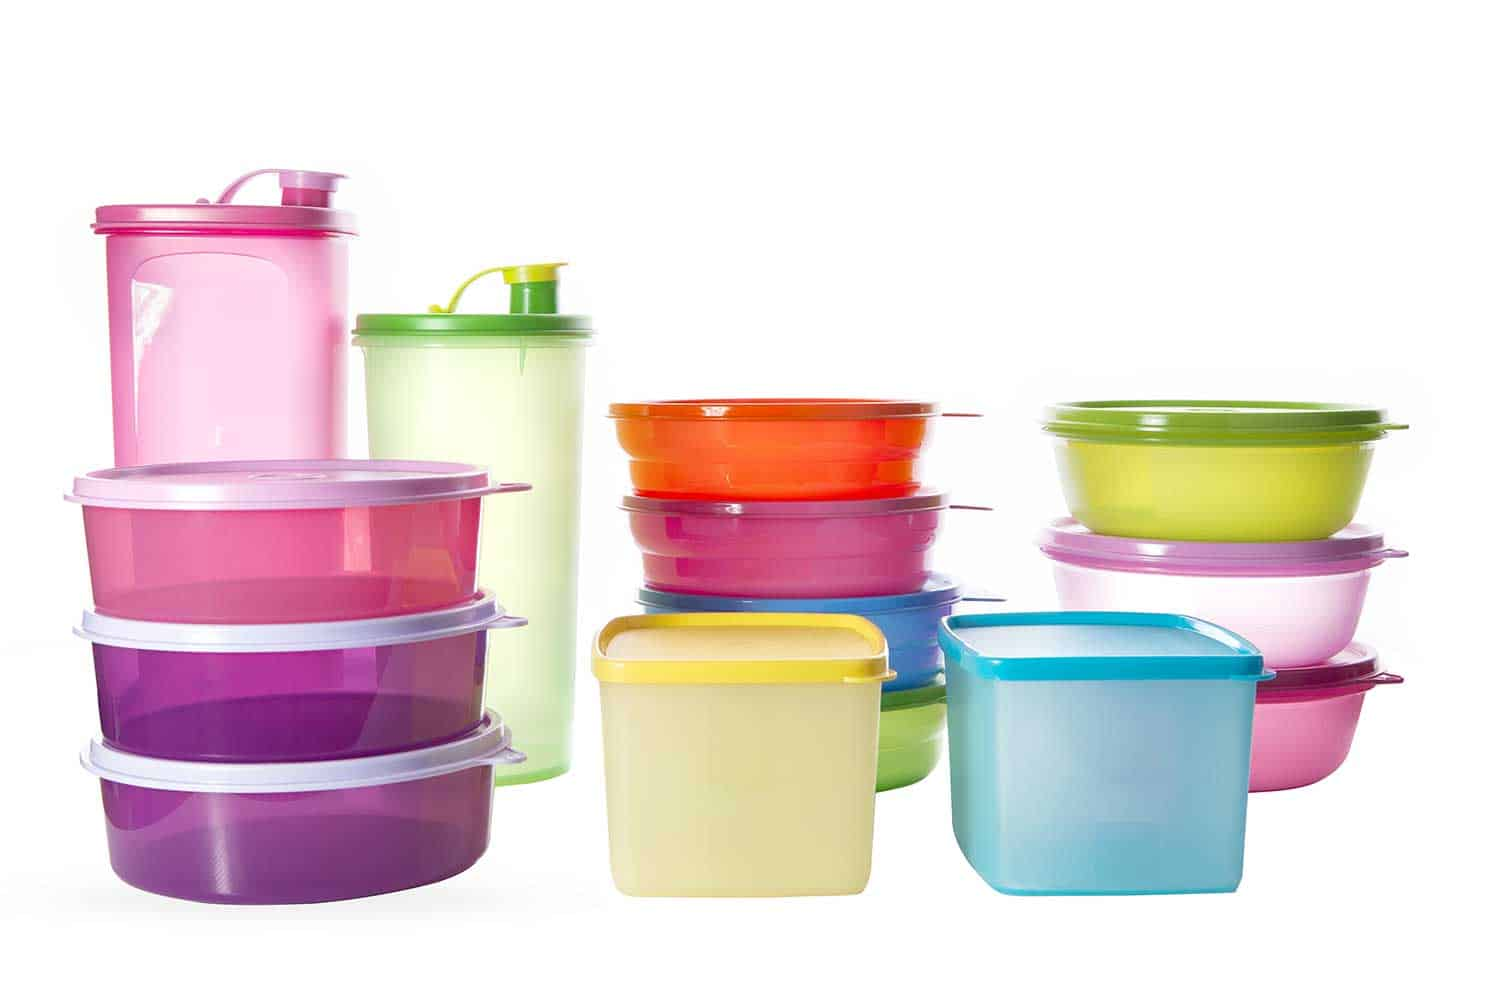 Stack of various Tupperware Brands products including pitchers and small square rounds